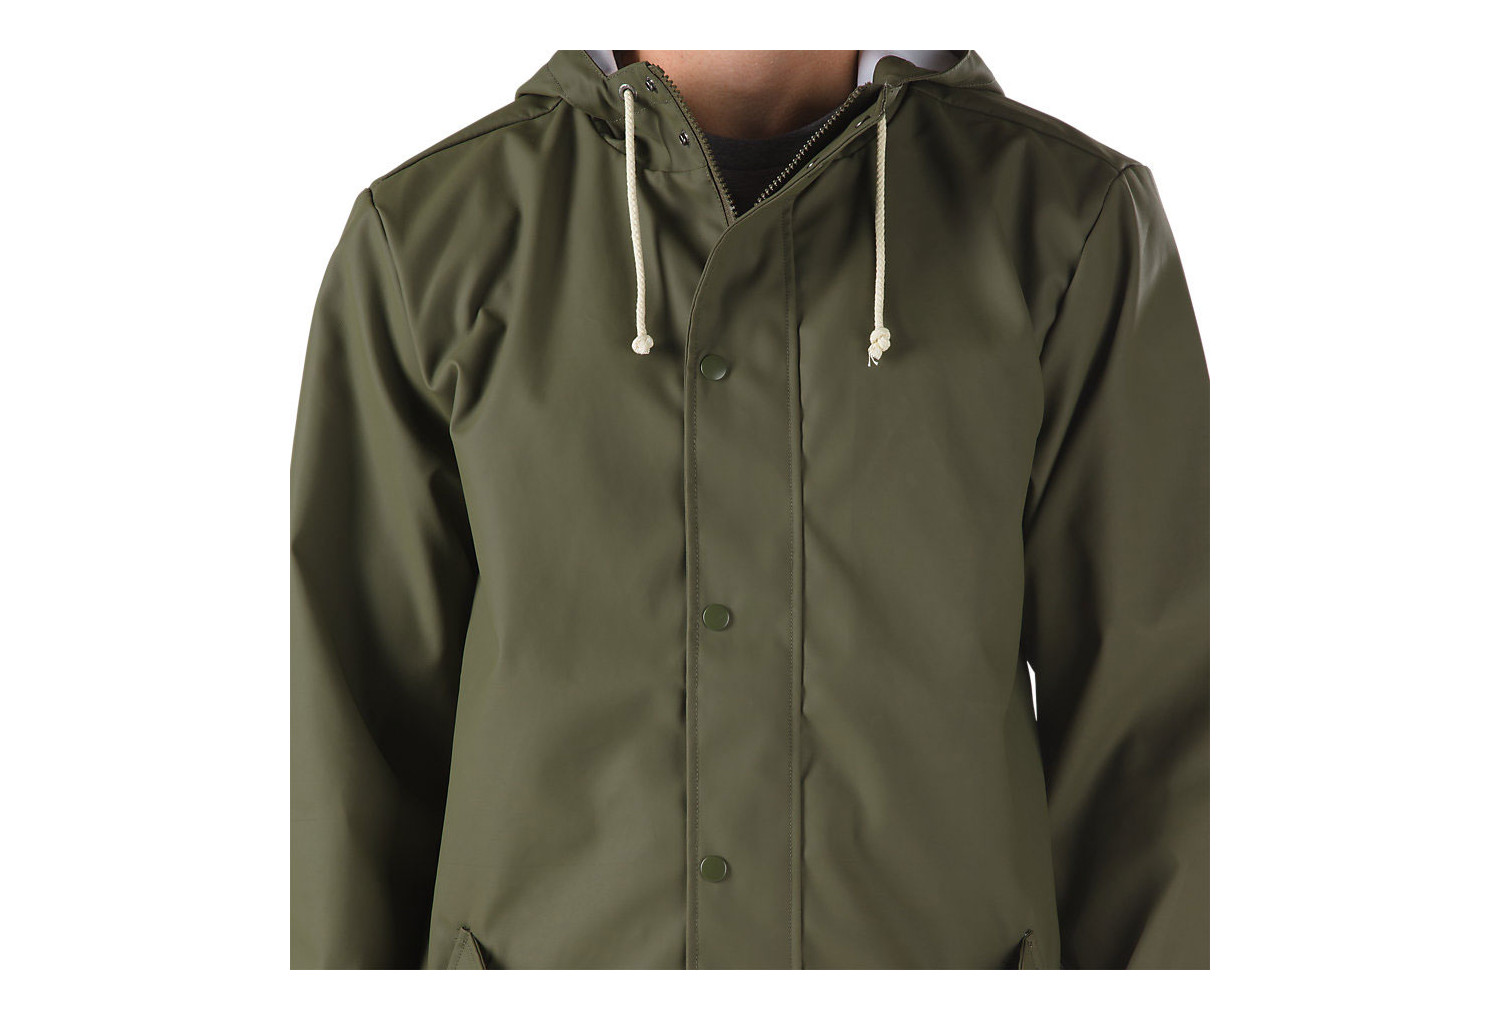 VANS Junipero Jacke Army Green